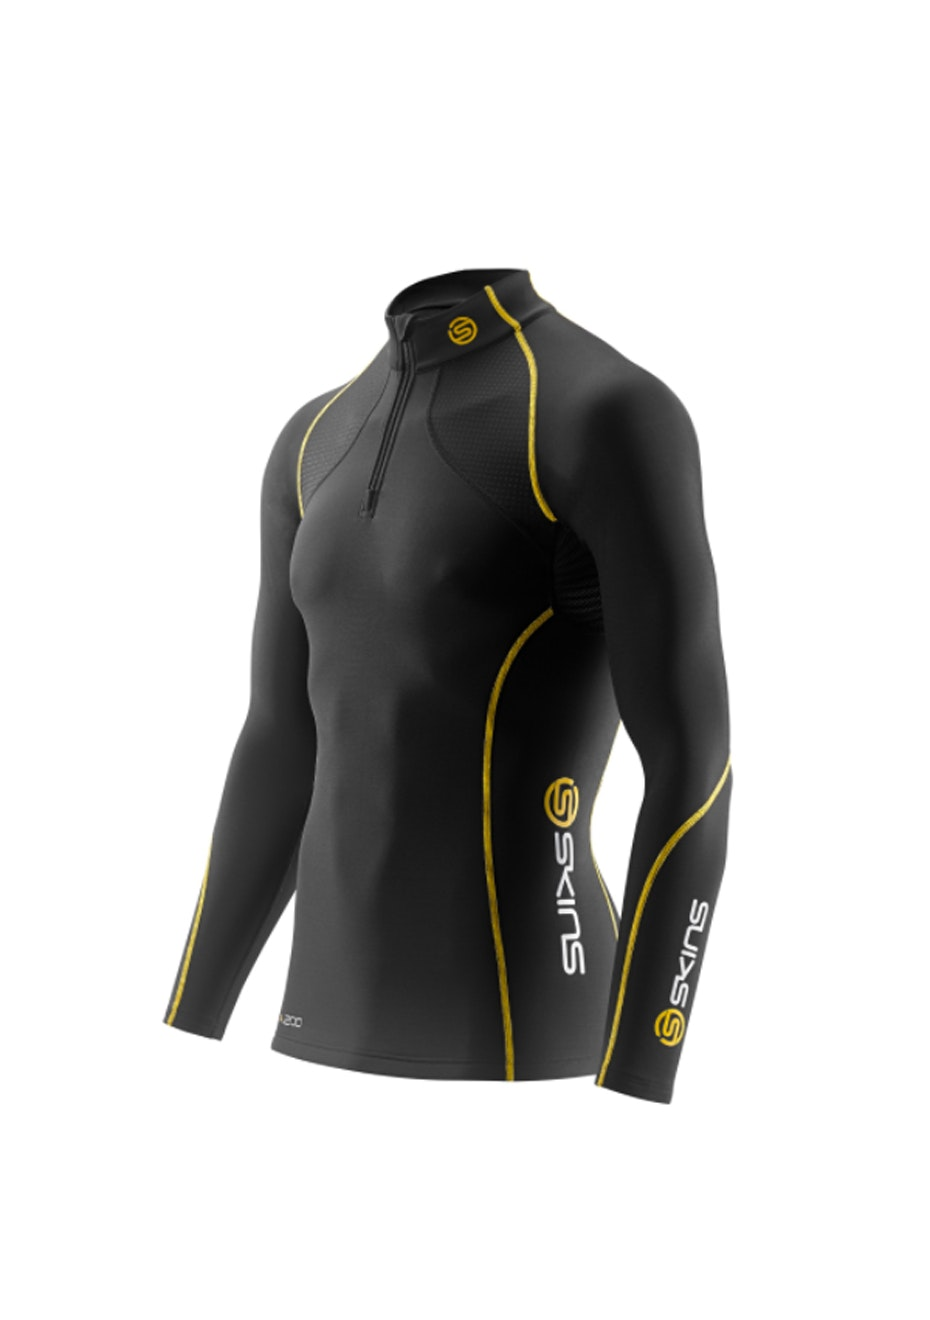 Skins -  A200 Bk/Yellow Long Sleeve Thera Top with Zip - Mens